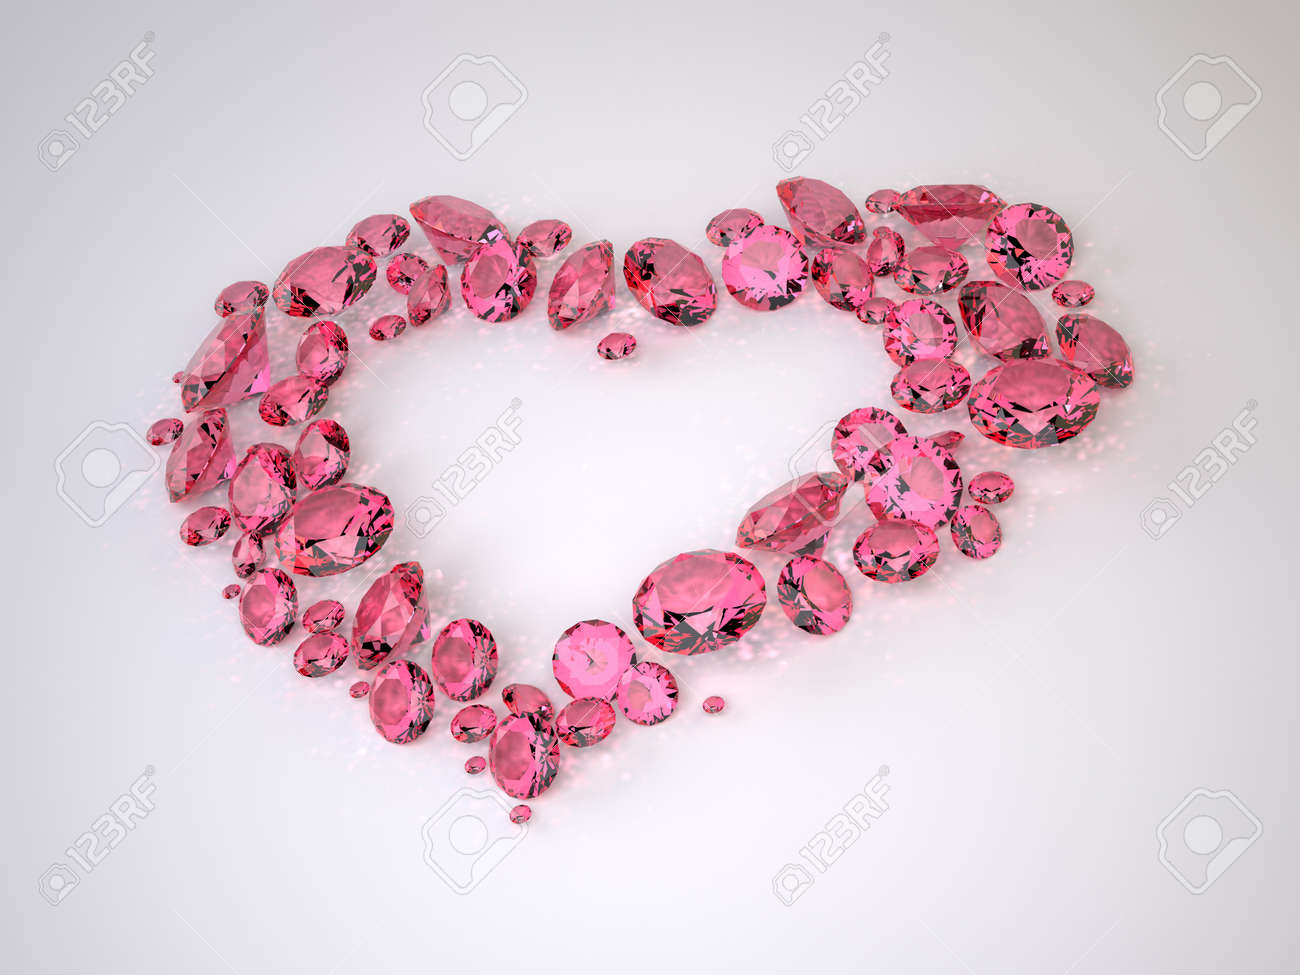 The Three-dimensional Diamonds located in Shape of Heart Stock Photo - 17472173